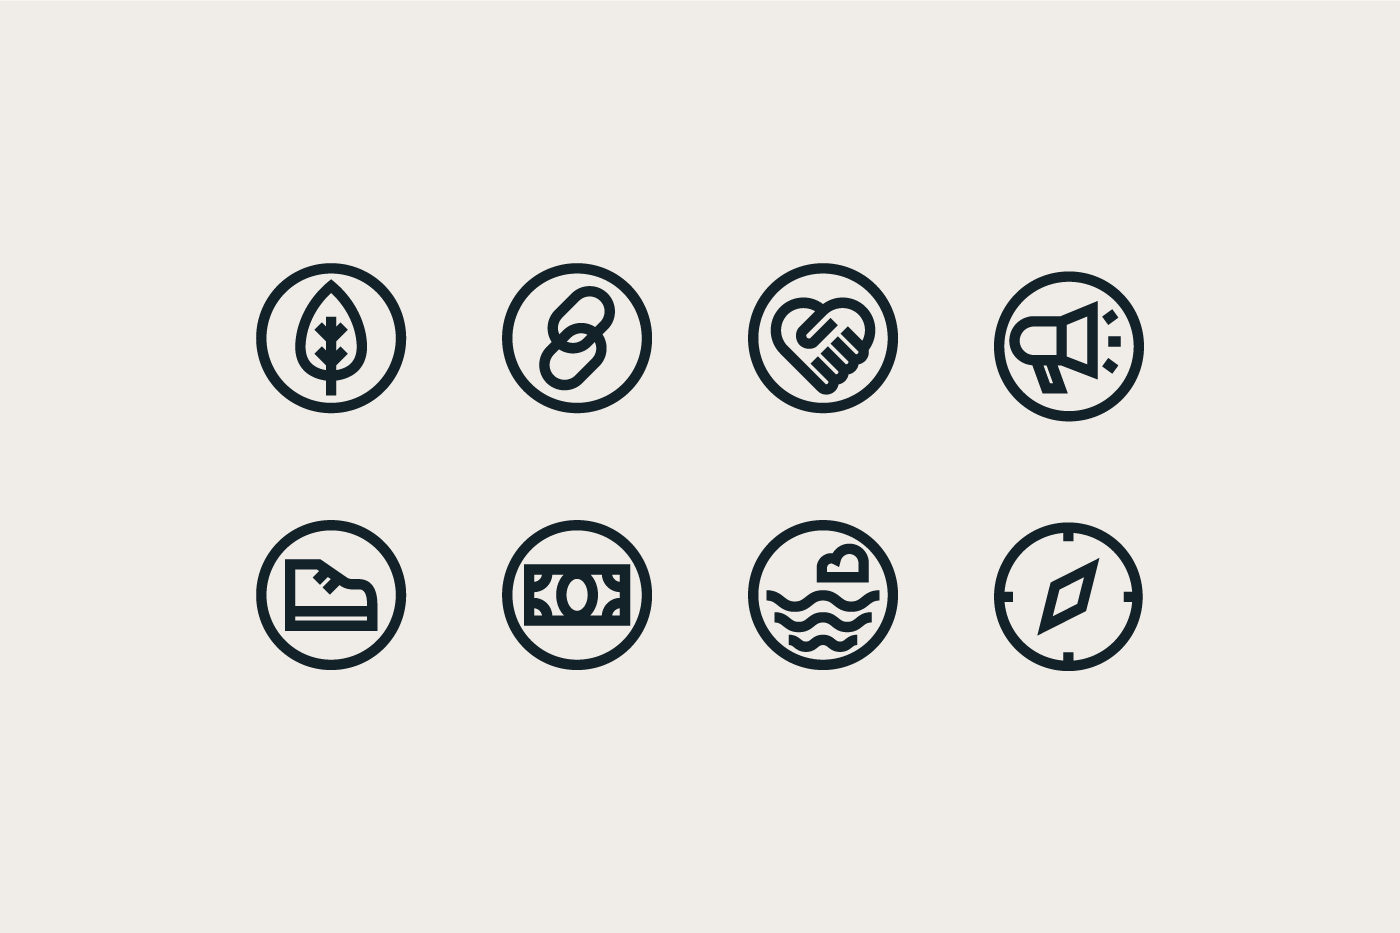 keen-effect-icons.png